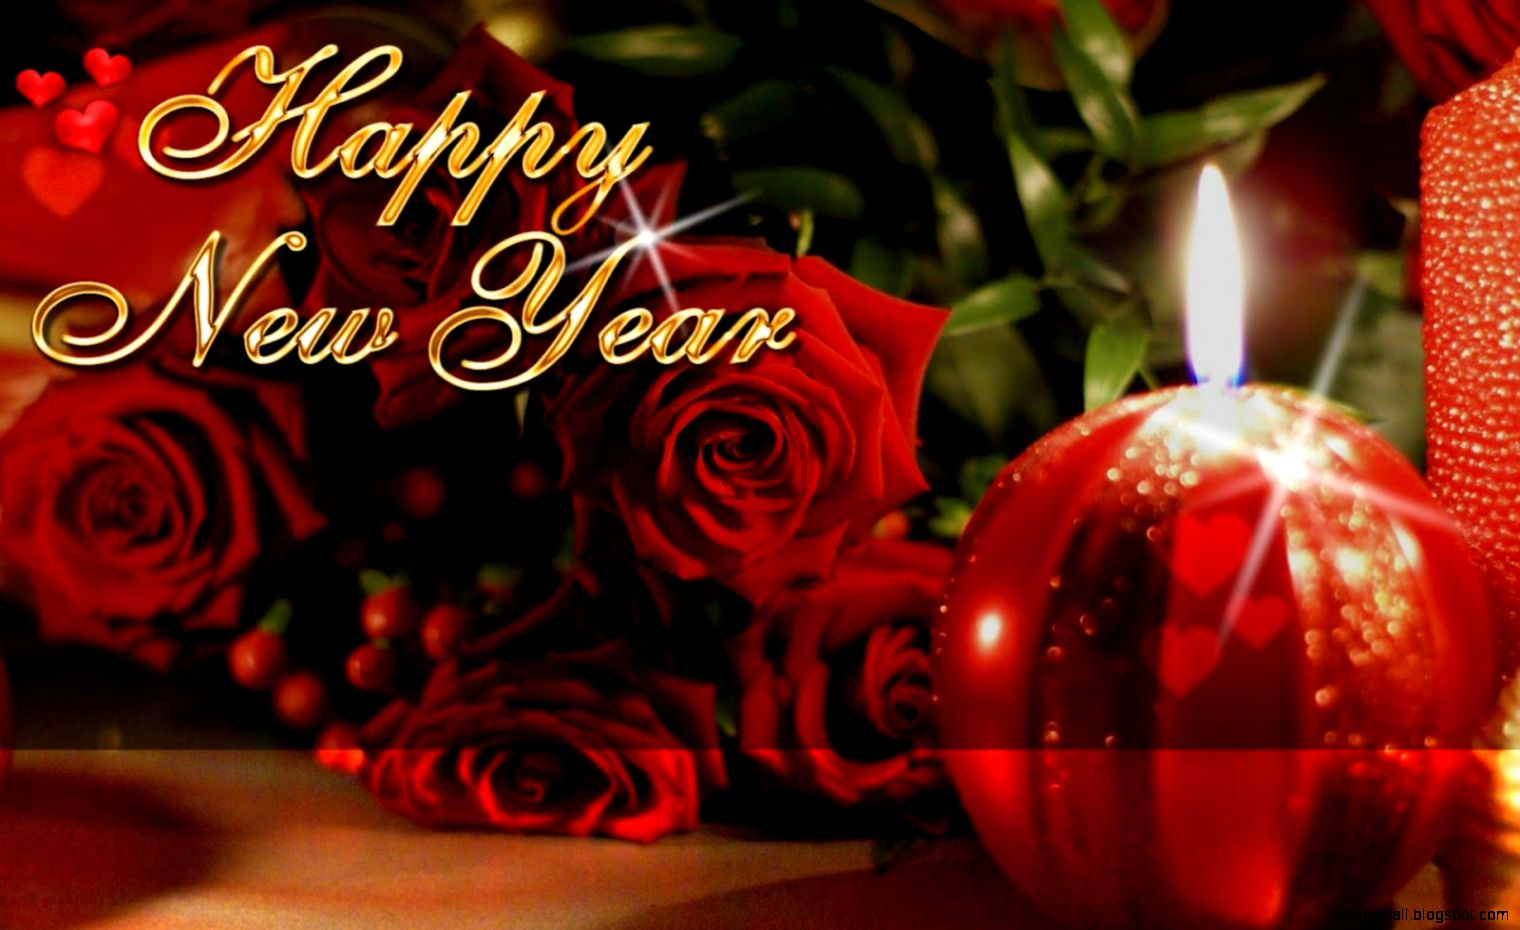 Happy New Year Wishes Messages Wallpapers Mega Wallpapers